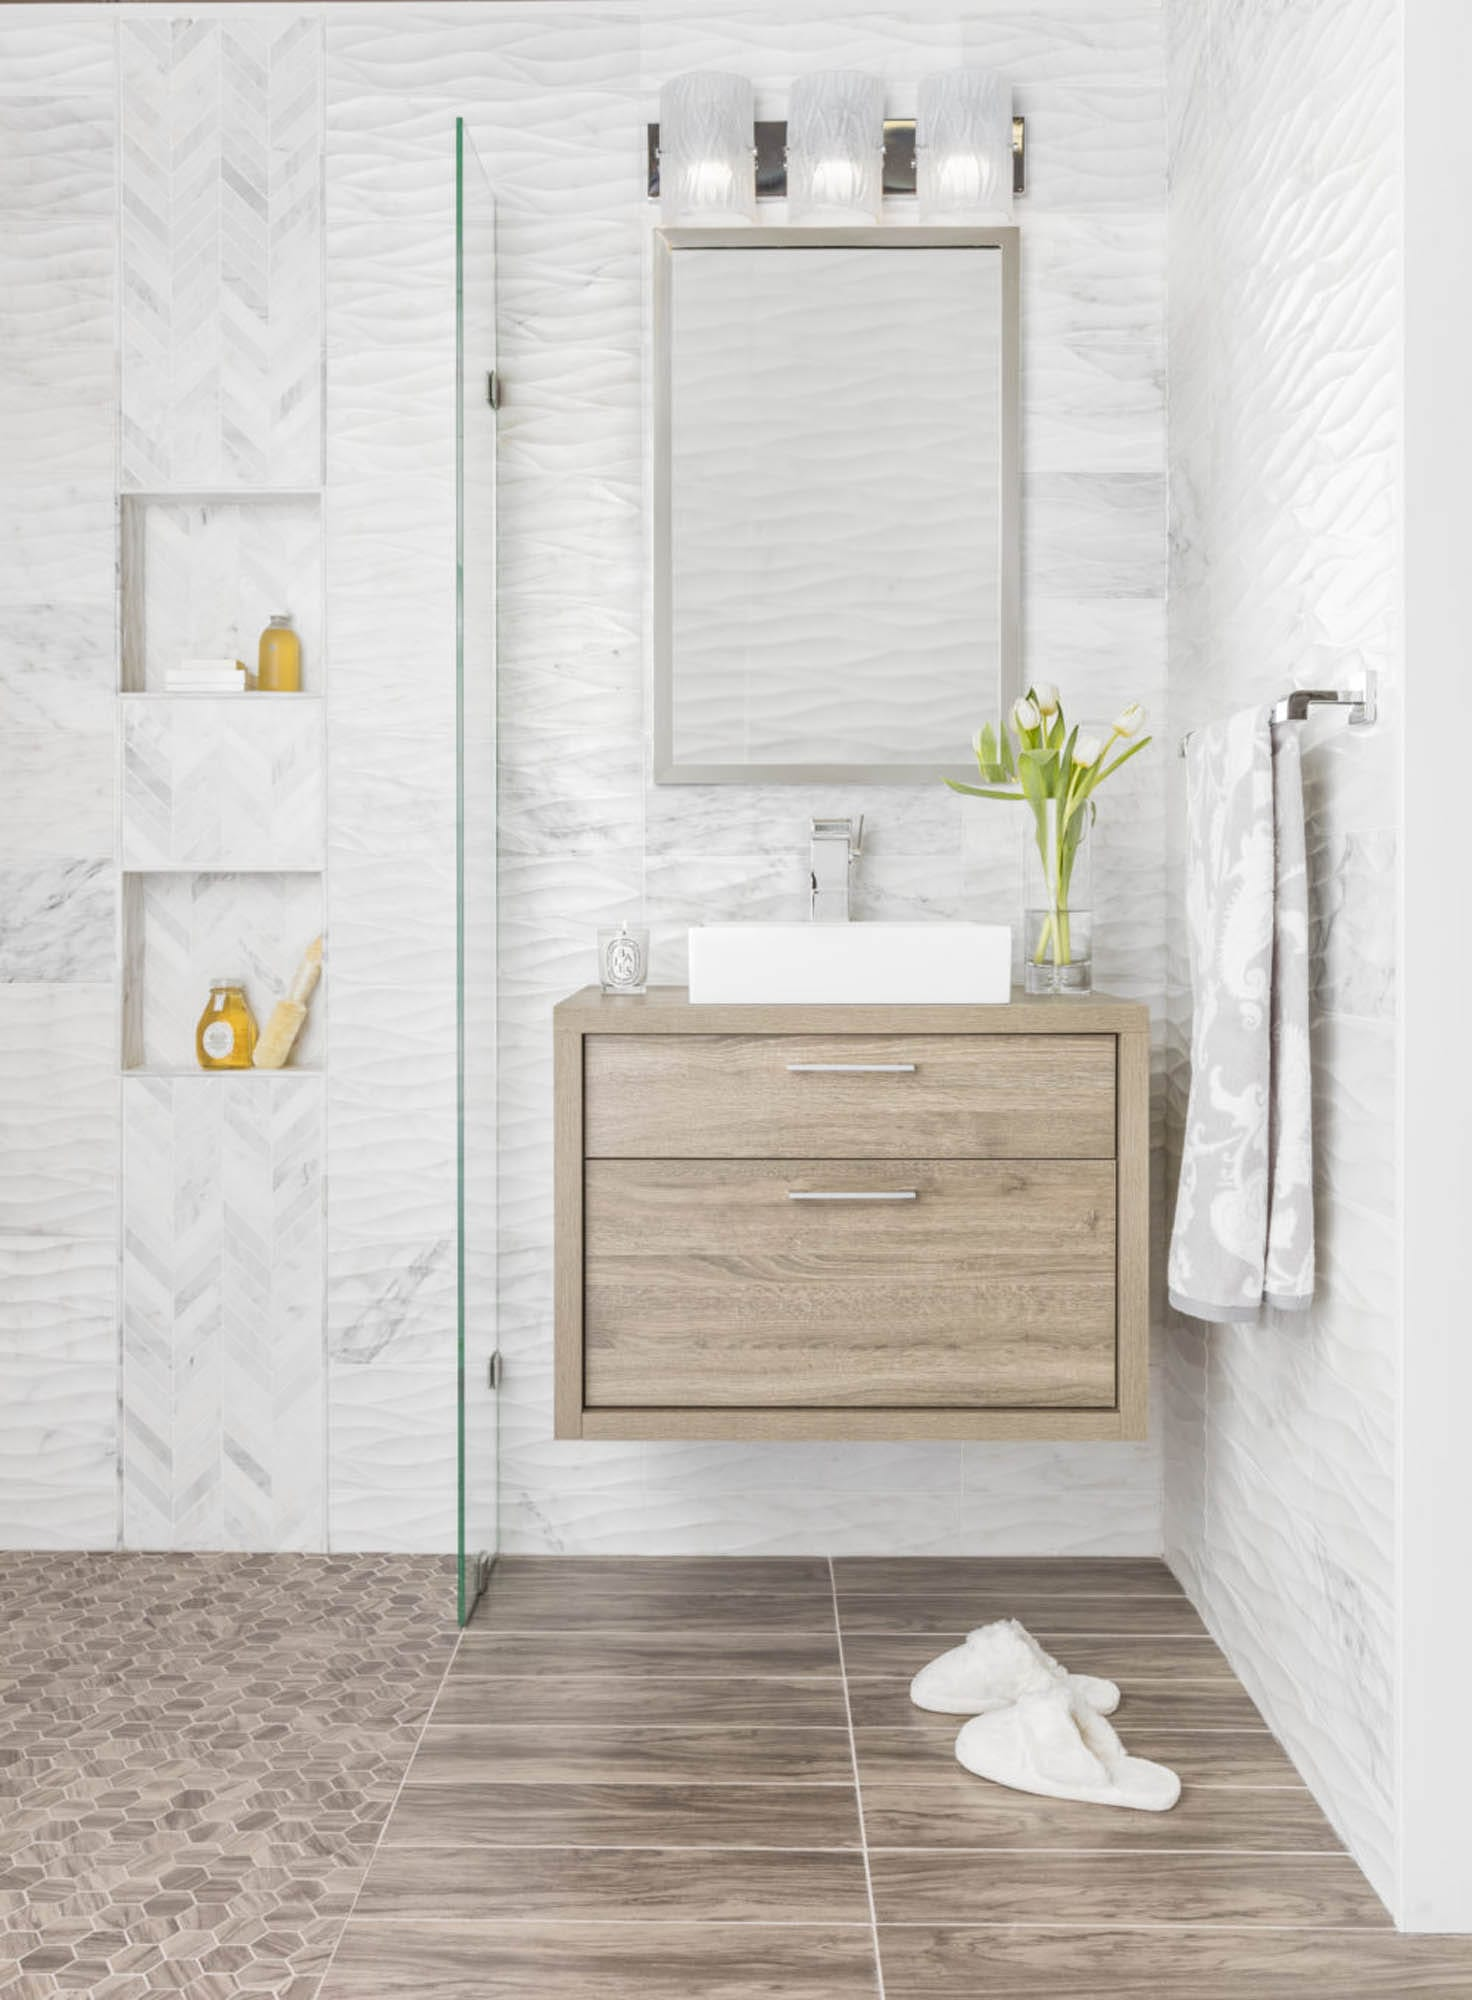 Tried-and-True Wall And Floor Tile Combinations - The Tile Shop Blog